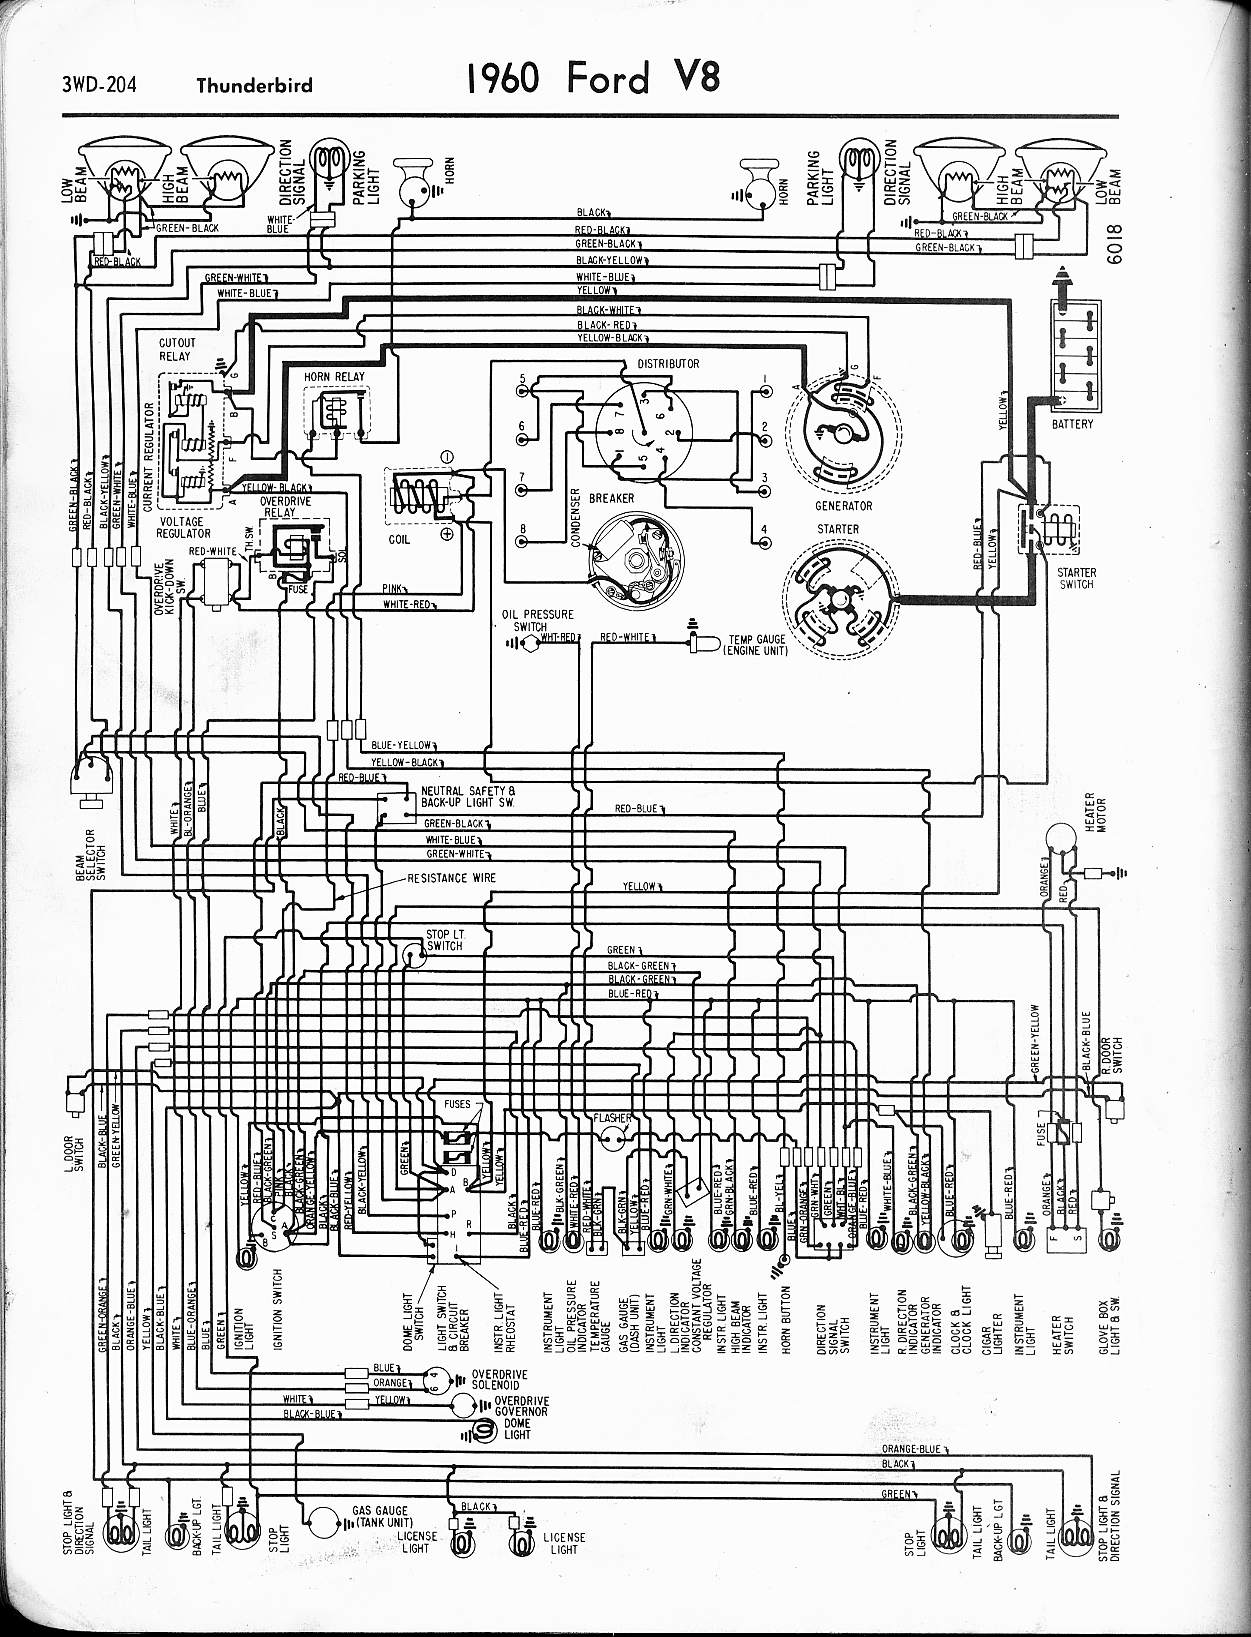 1965 ford wiring schematic wiring diagram todays57 65 ford wiring diagrams 1965 corvette wiring schematic 1965 ford wiring schematic